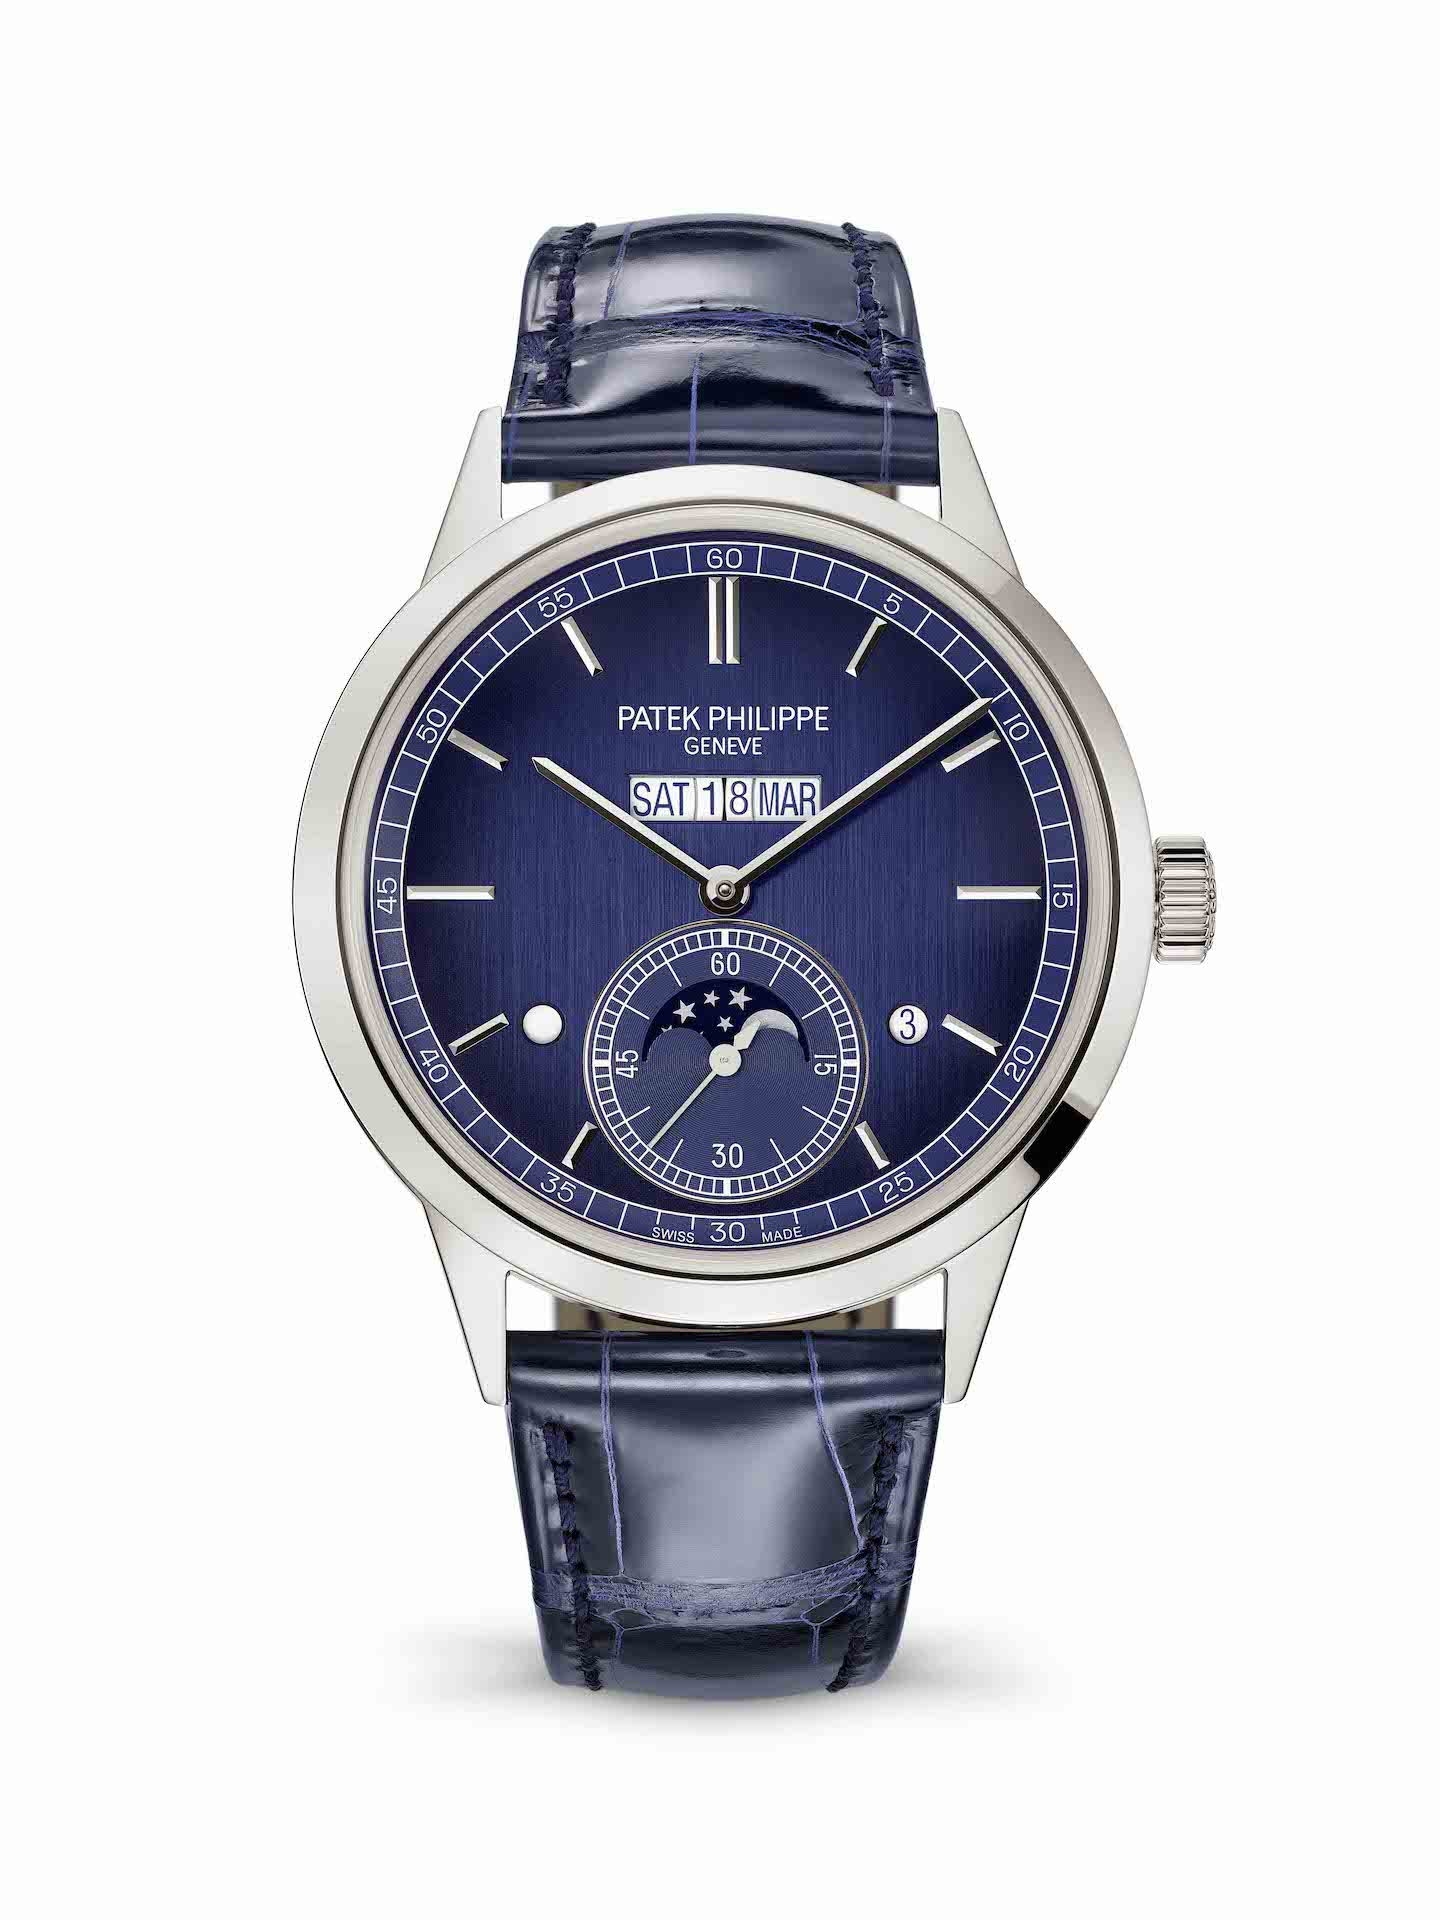 Patek Philippe Ref. 5236P in-line perpetual calendar watch